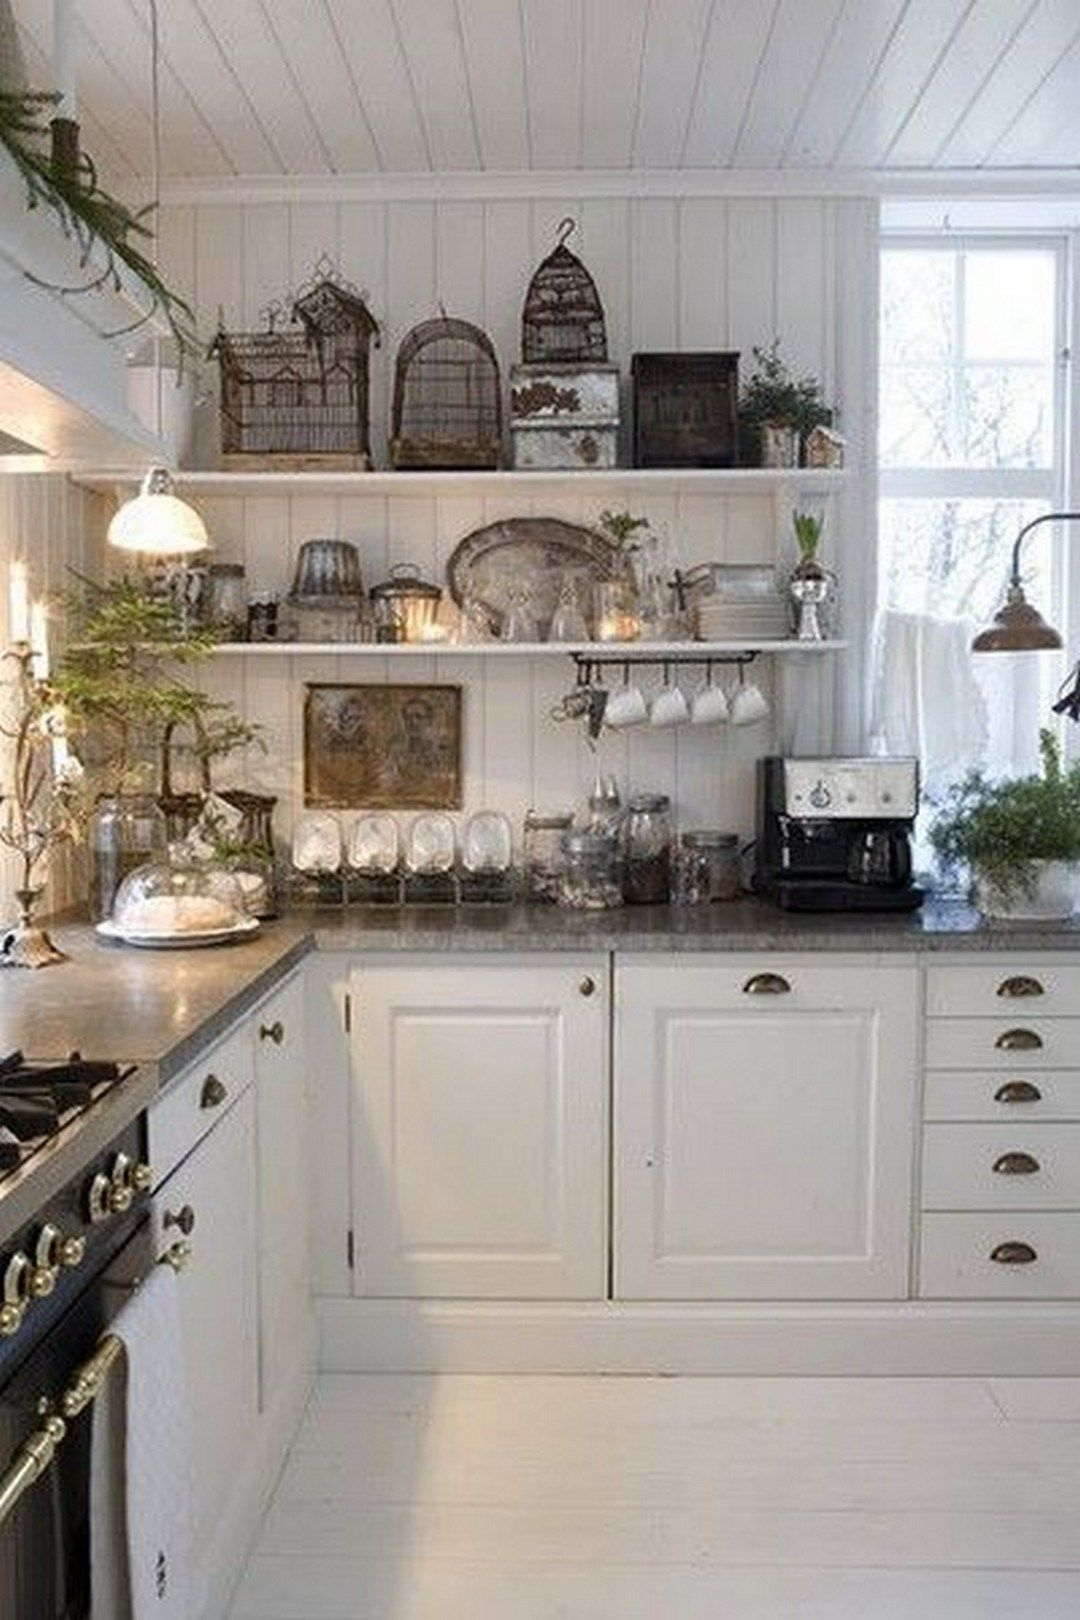 Luxury French Country Kitchen with White Cabinets